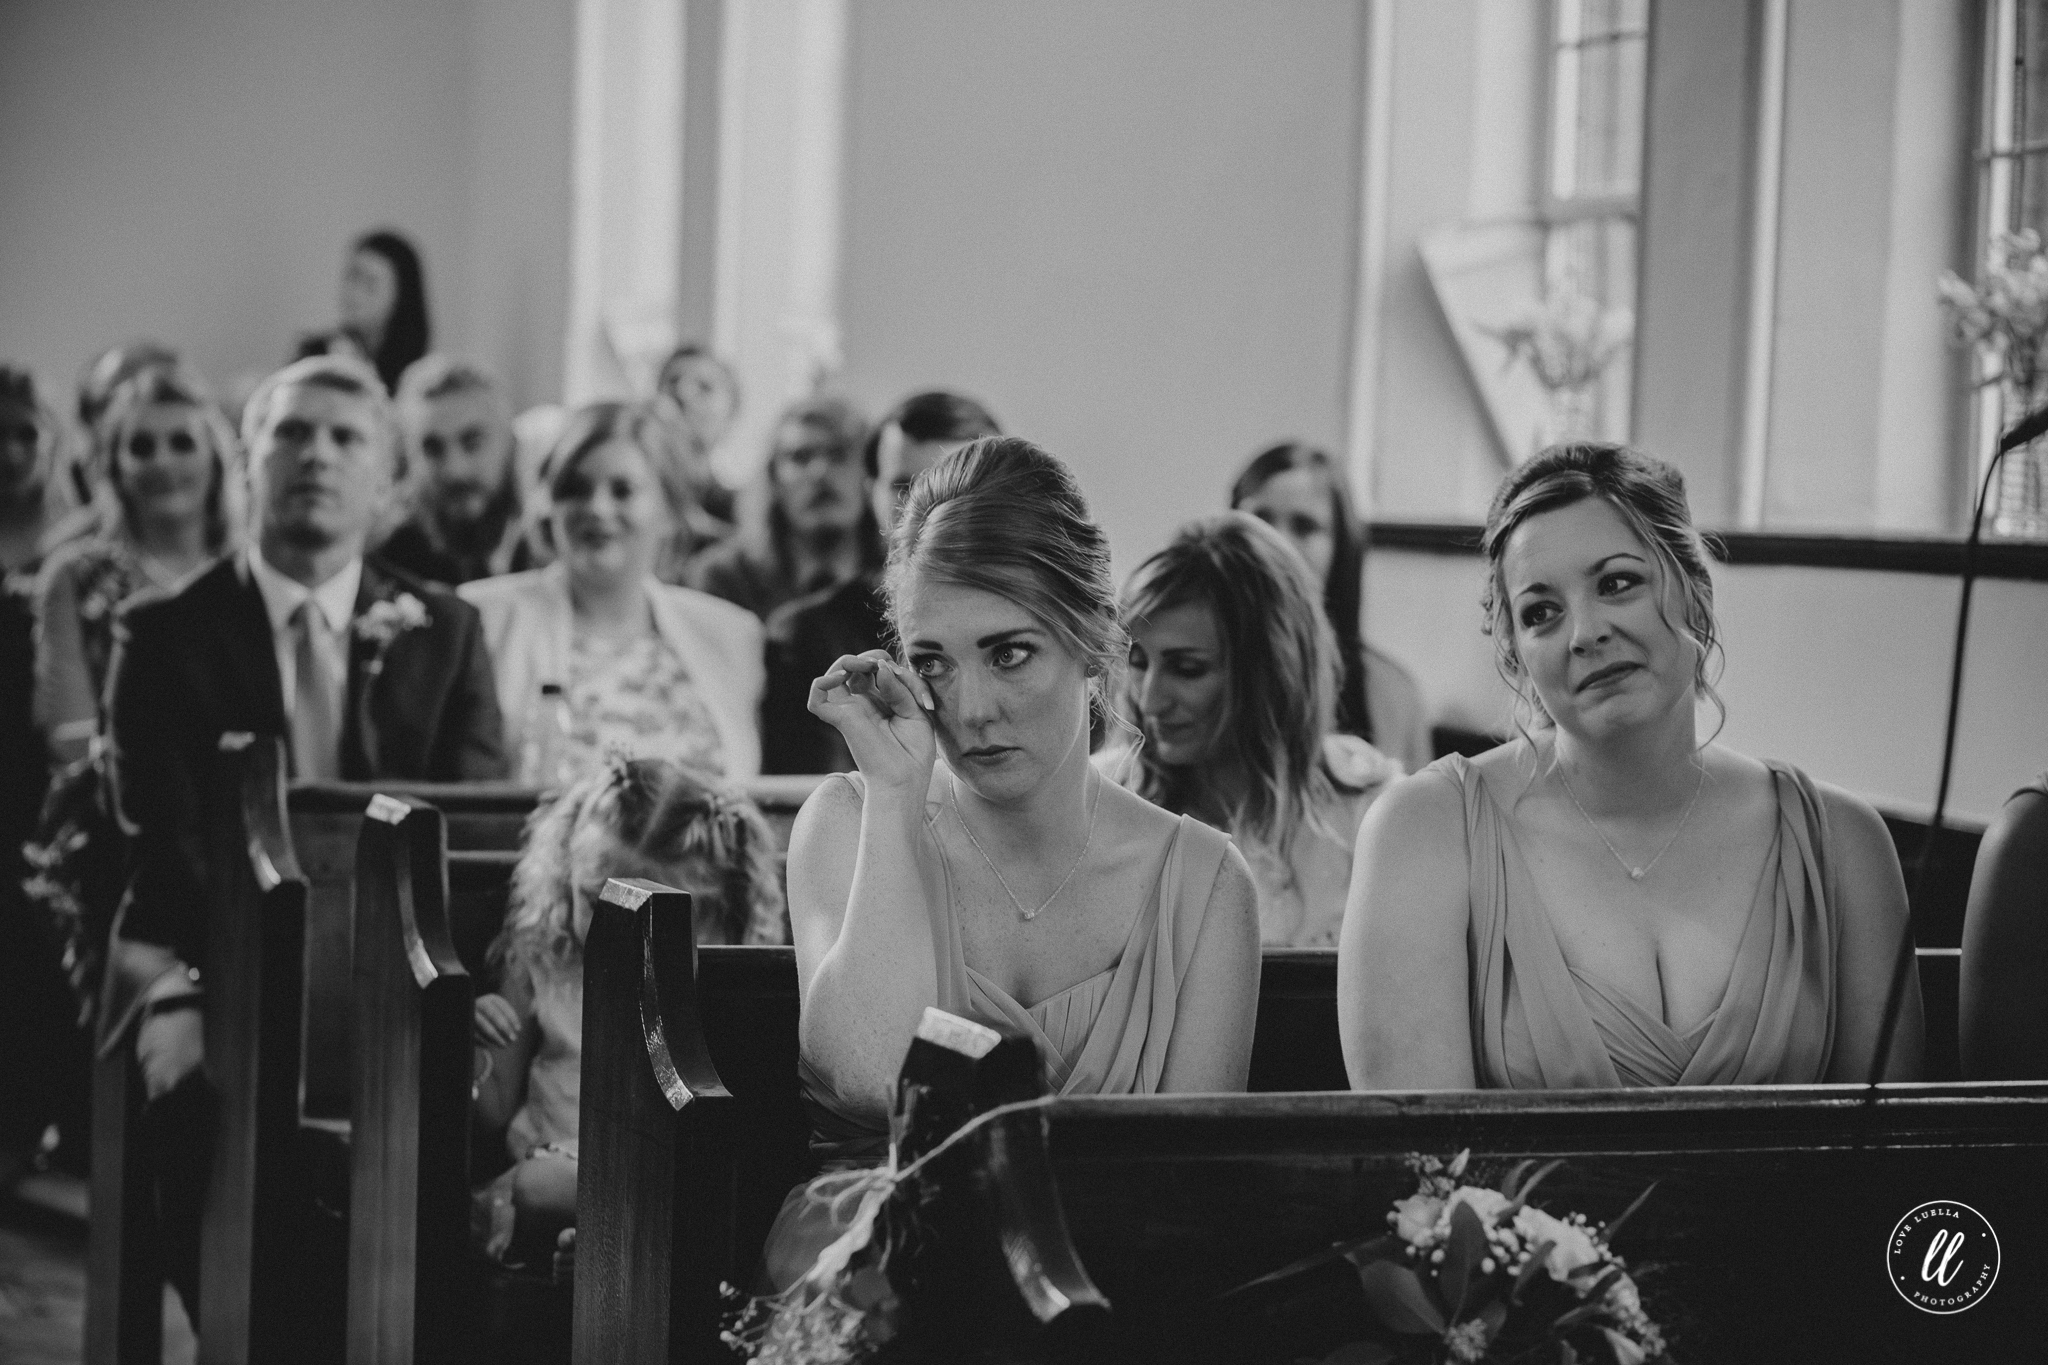 monastery wedding, festival wedding, llangollen wedding photography, northop hall, north west wedding photographer, wedding photography north wales, liverpool wedding photography, relaxed wedding photography, sage green wedding, love luella photography, abbey farm llangollen